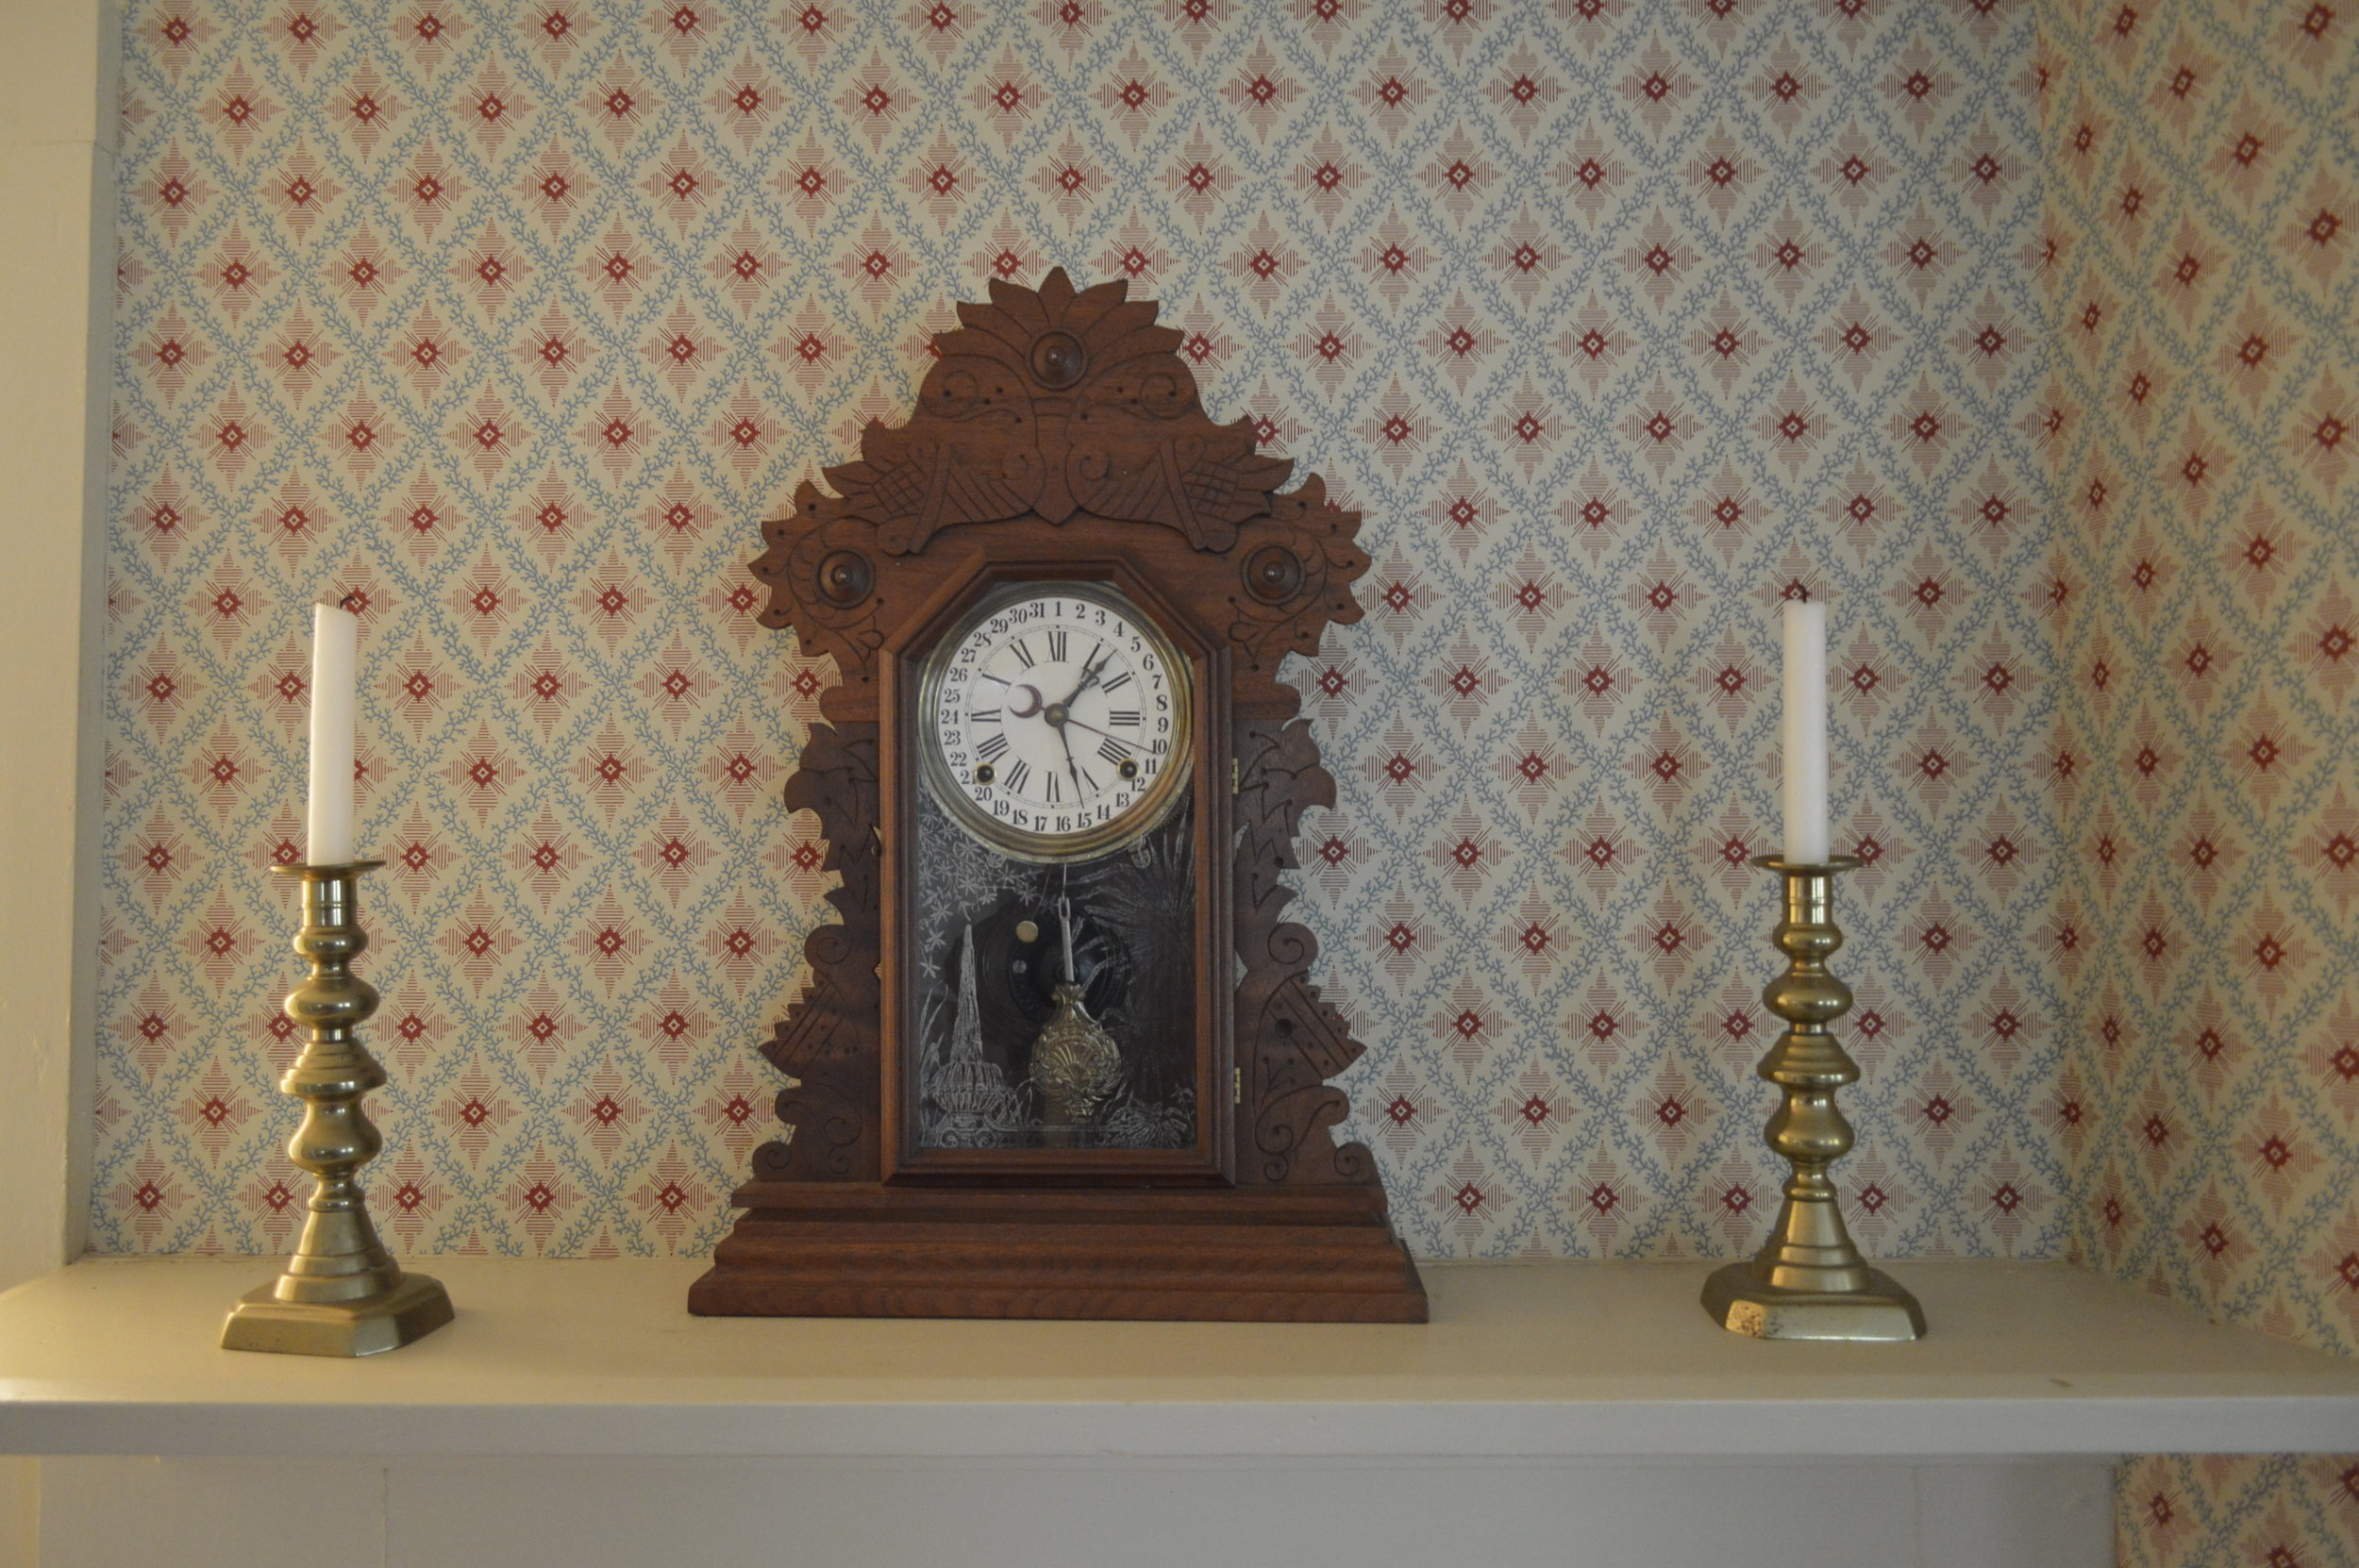 The wallpaper in thedining room is reproduced from a sample from the ChicagoHistorical Society. This 1860 pattern is called Gravenberg lattice.